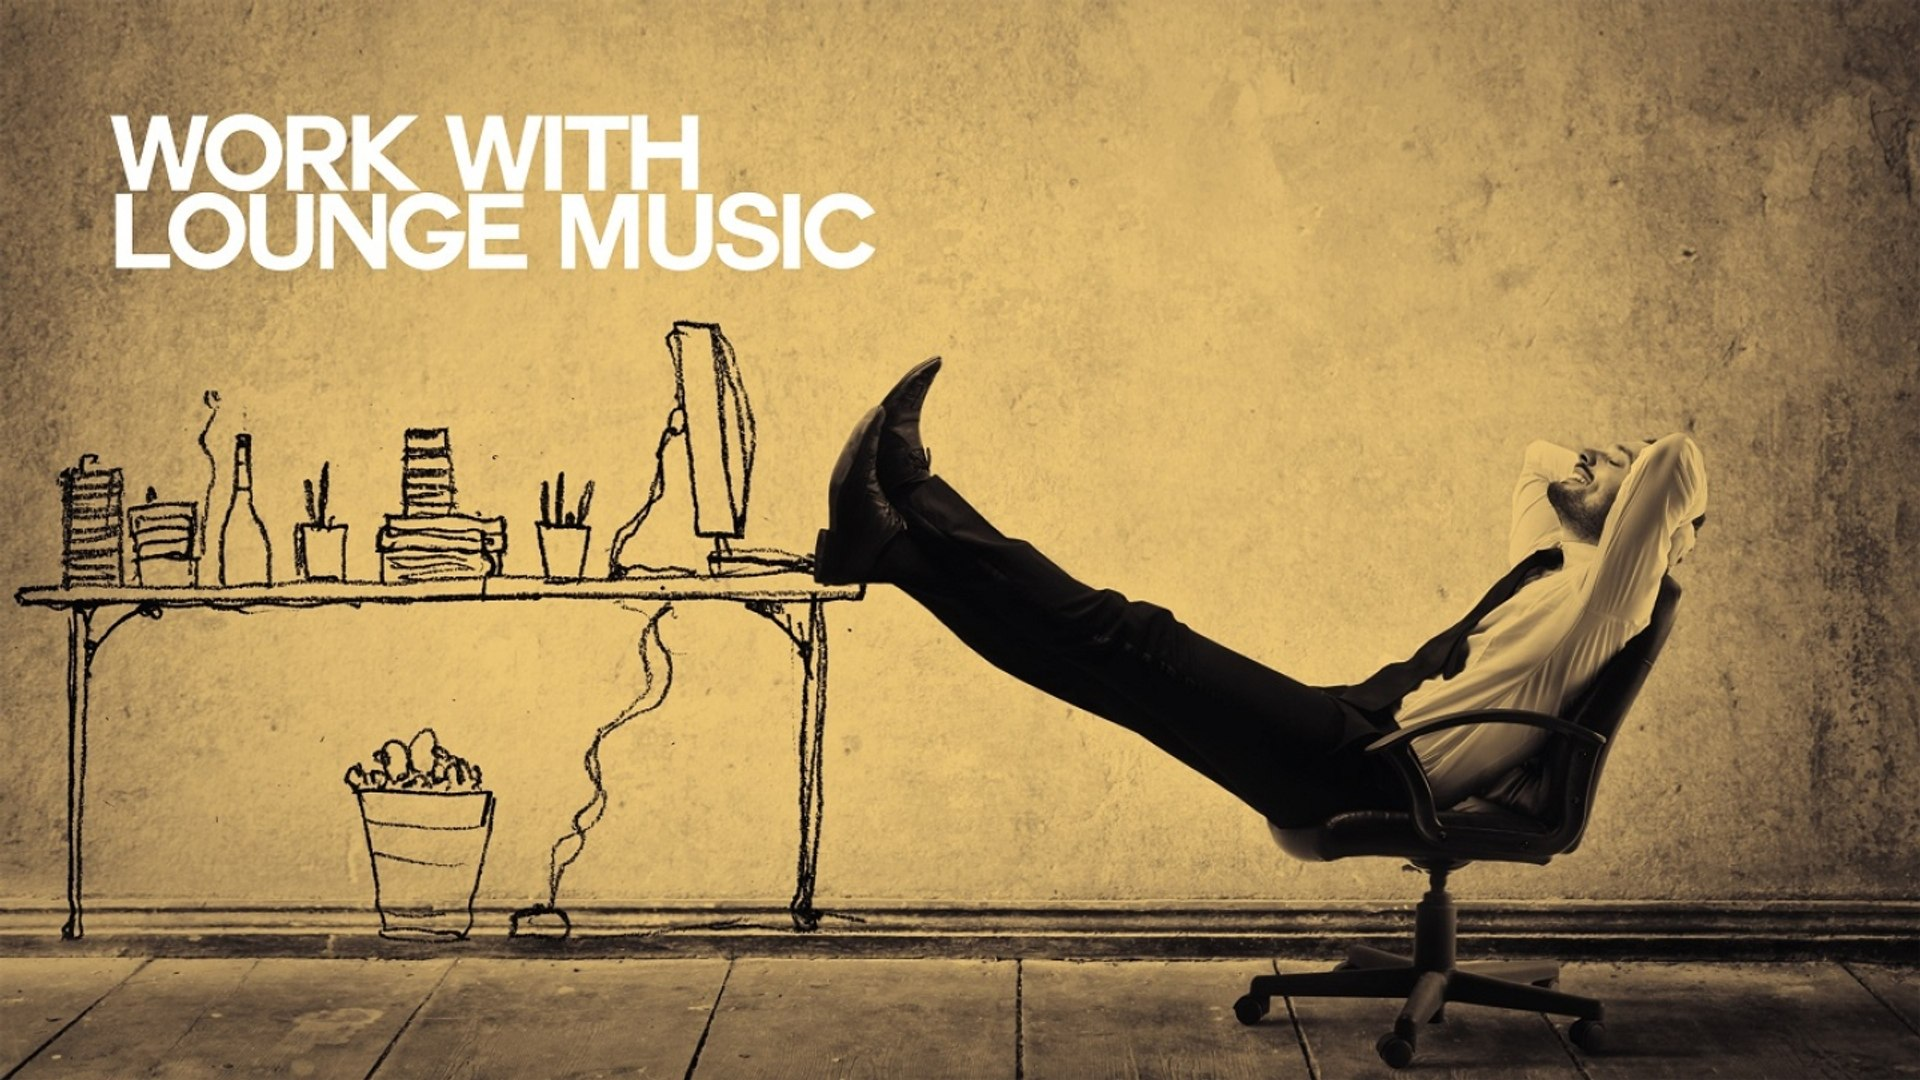 V.A - Let's Work with Lounge Music - Relaxing Sound